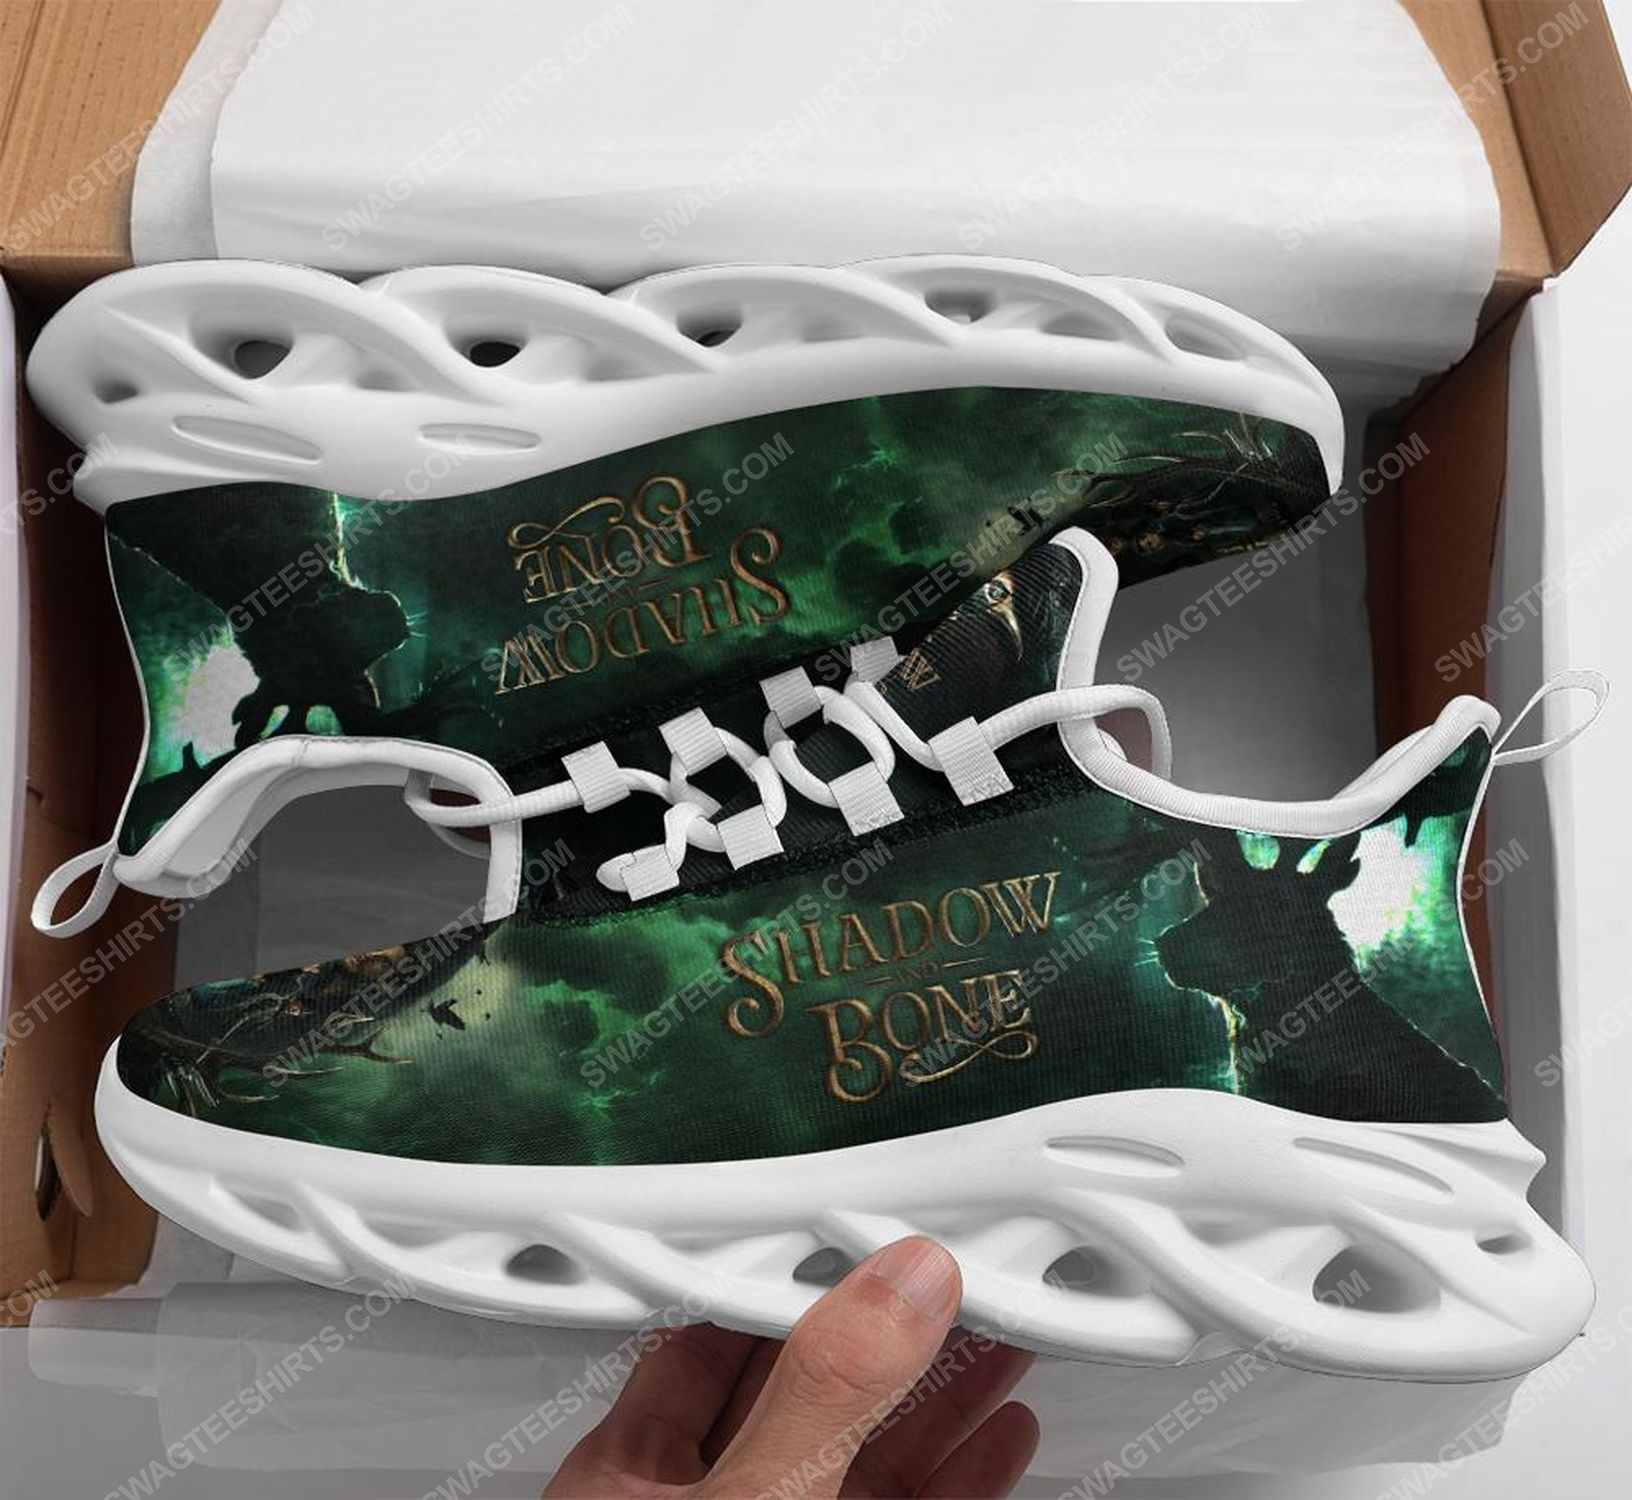 Shadow and bone tv show max soul shoes 1 - Copy (2)